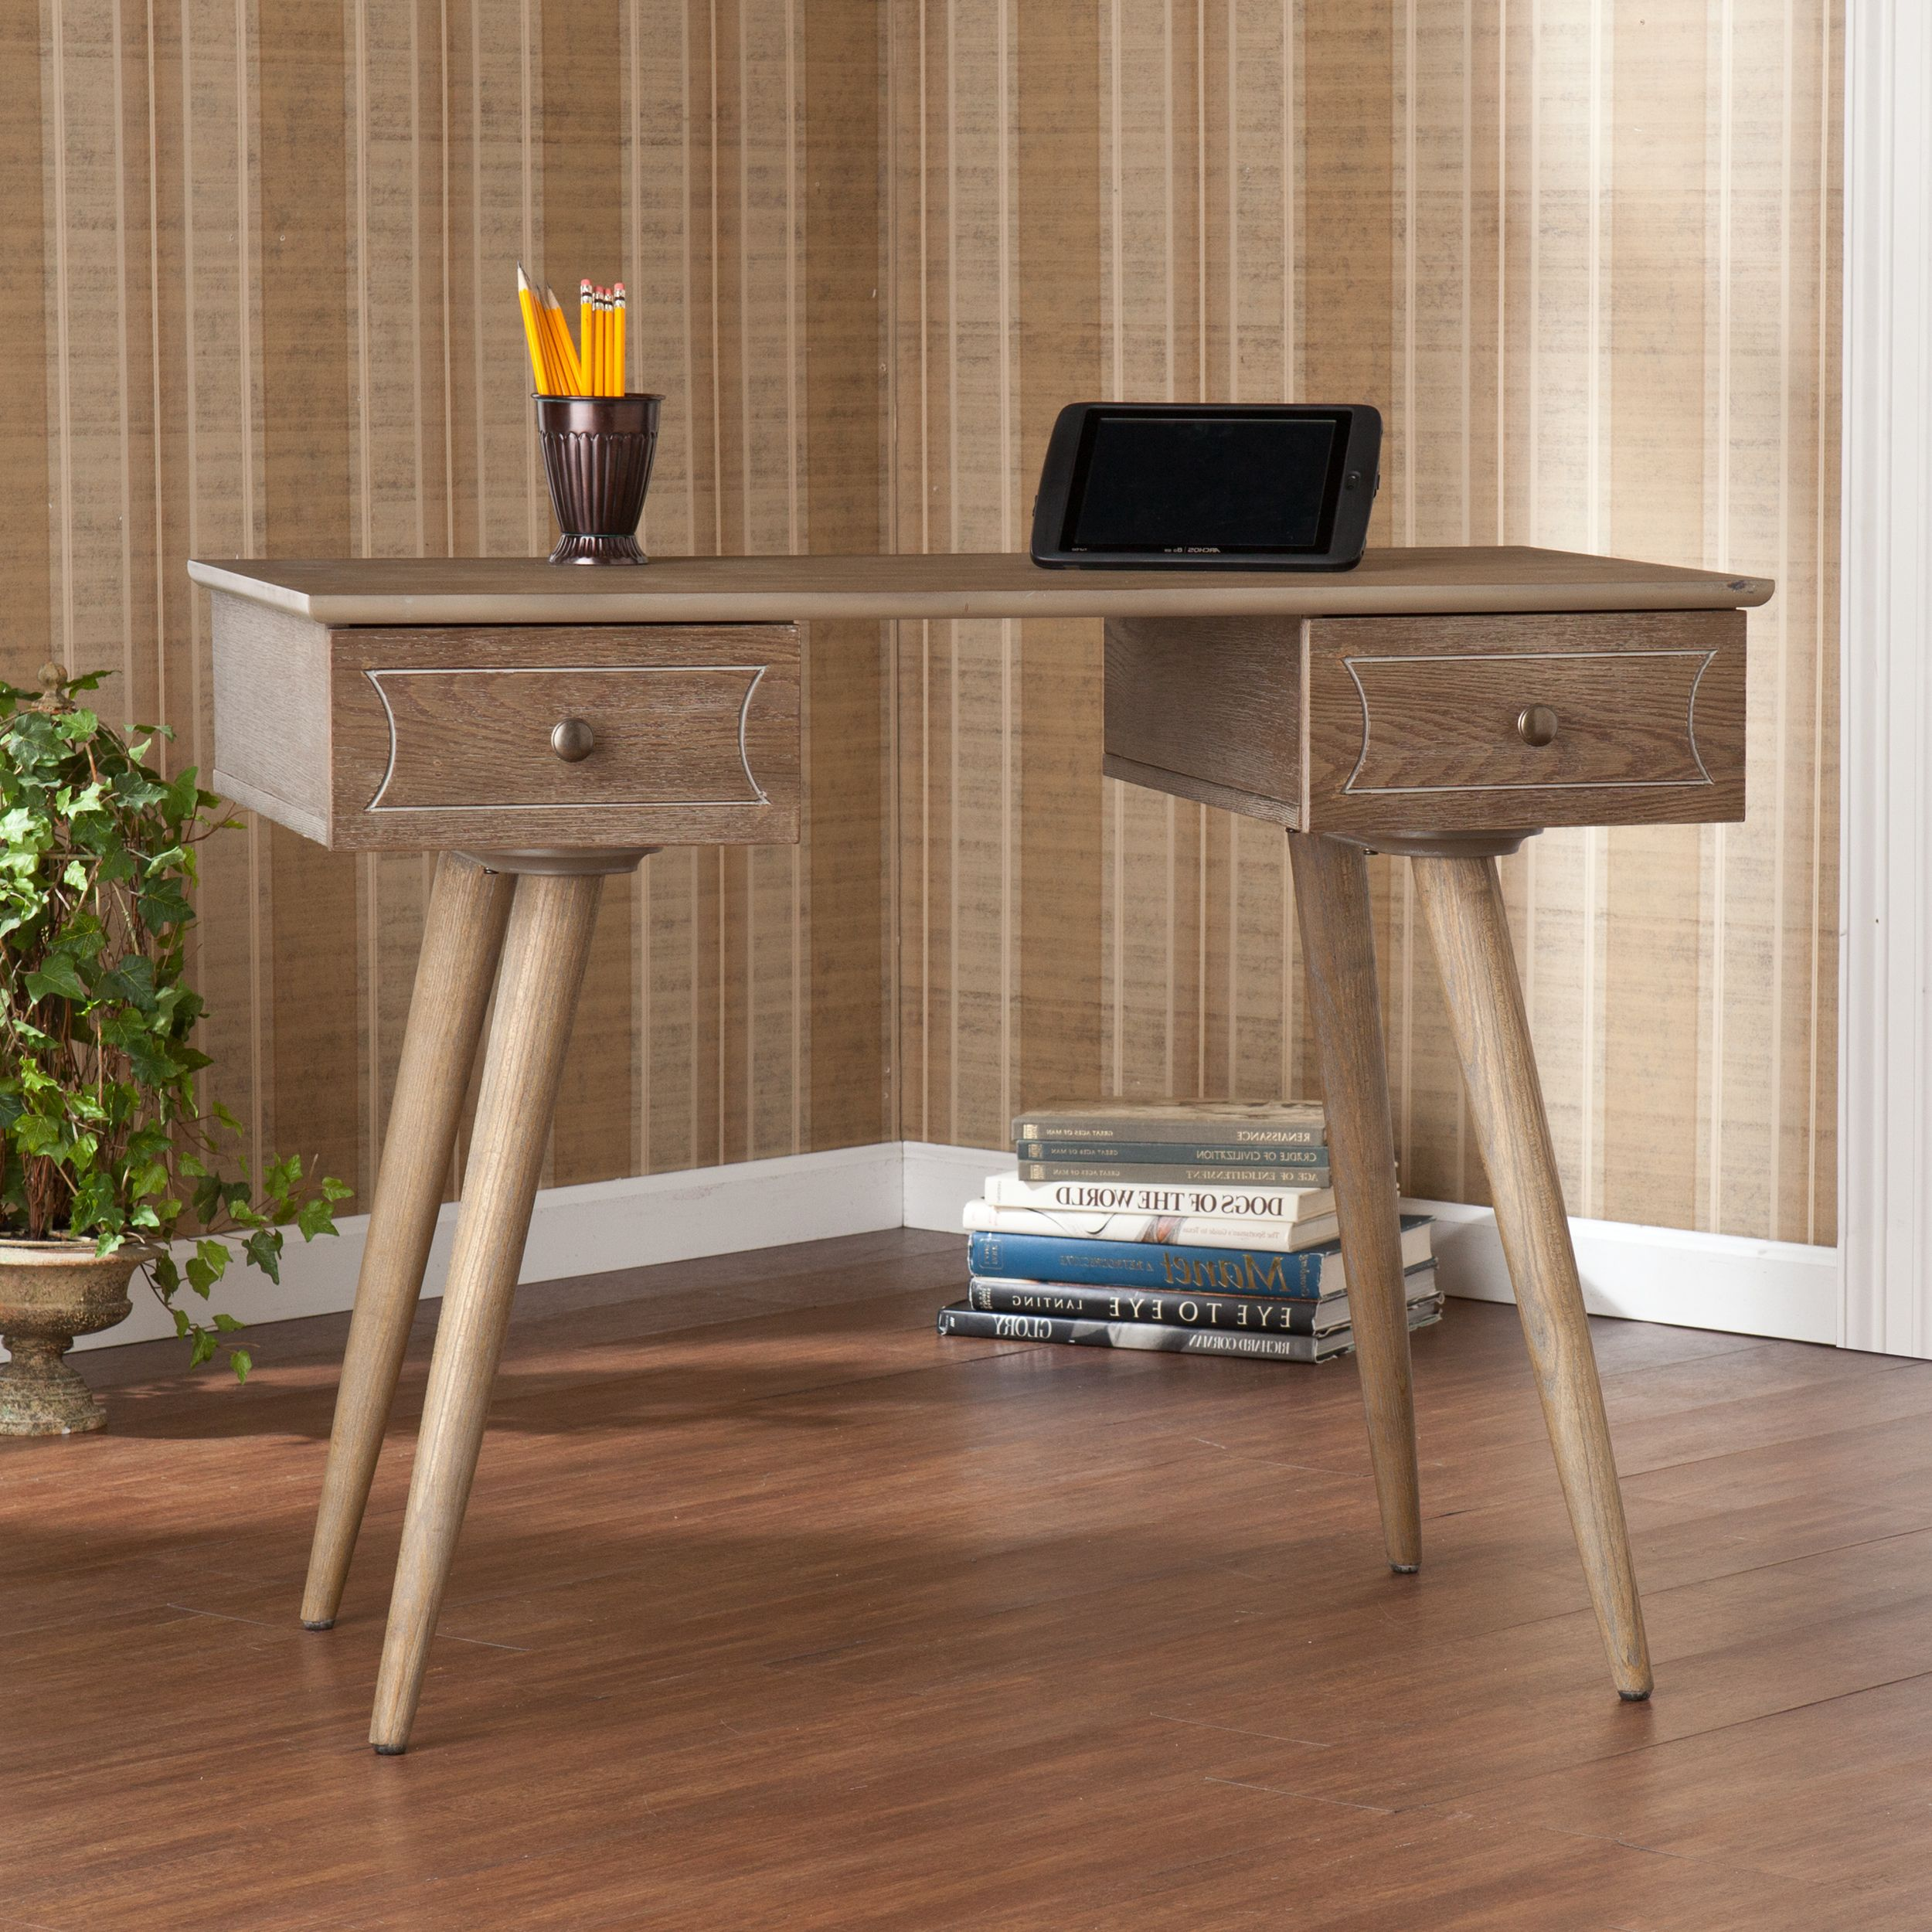 upton home barmere writing office desk by upton home | einkaufen, Möbel